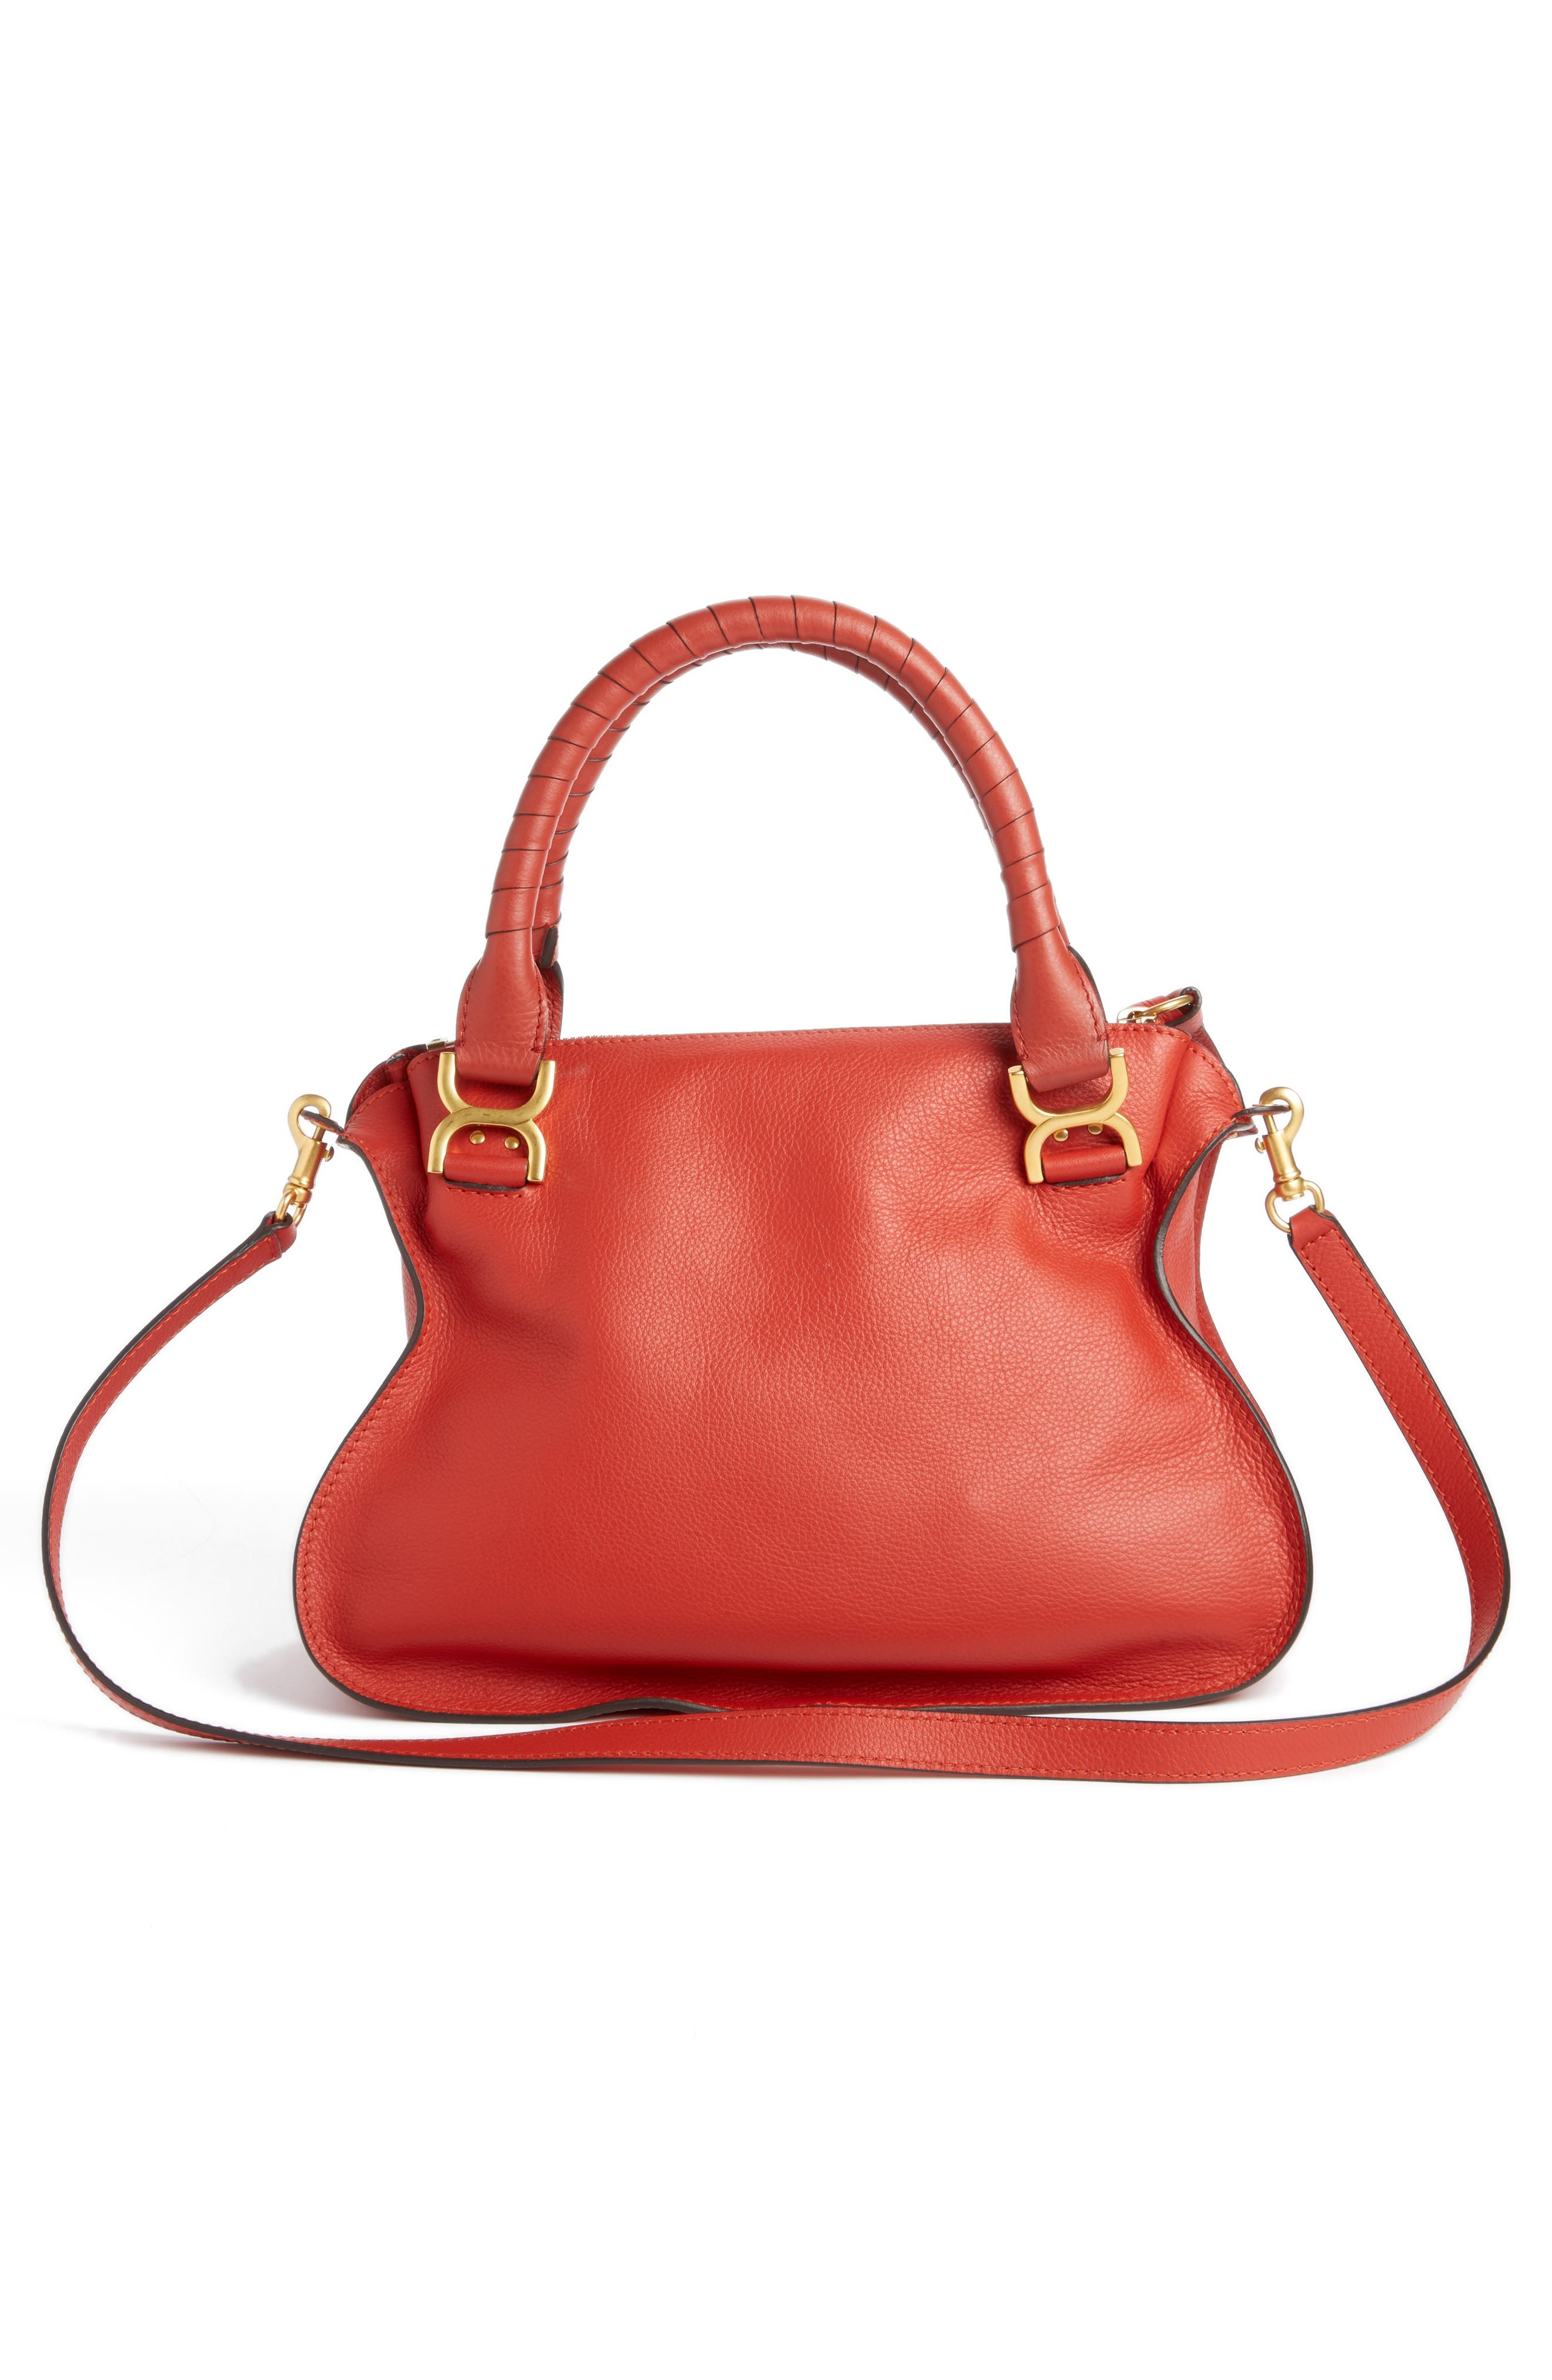 'Medium Marcie' Leather Satchel,                             Alternate thumbnail 3, color,                             Earthy Red